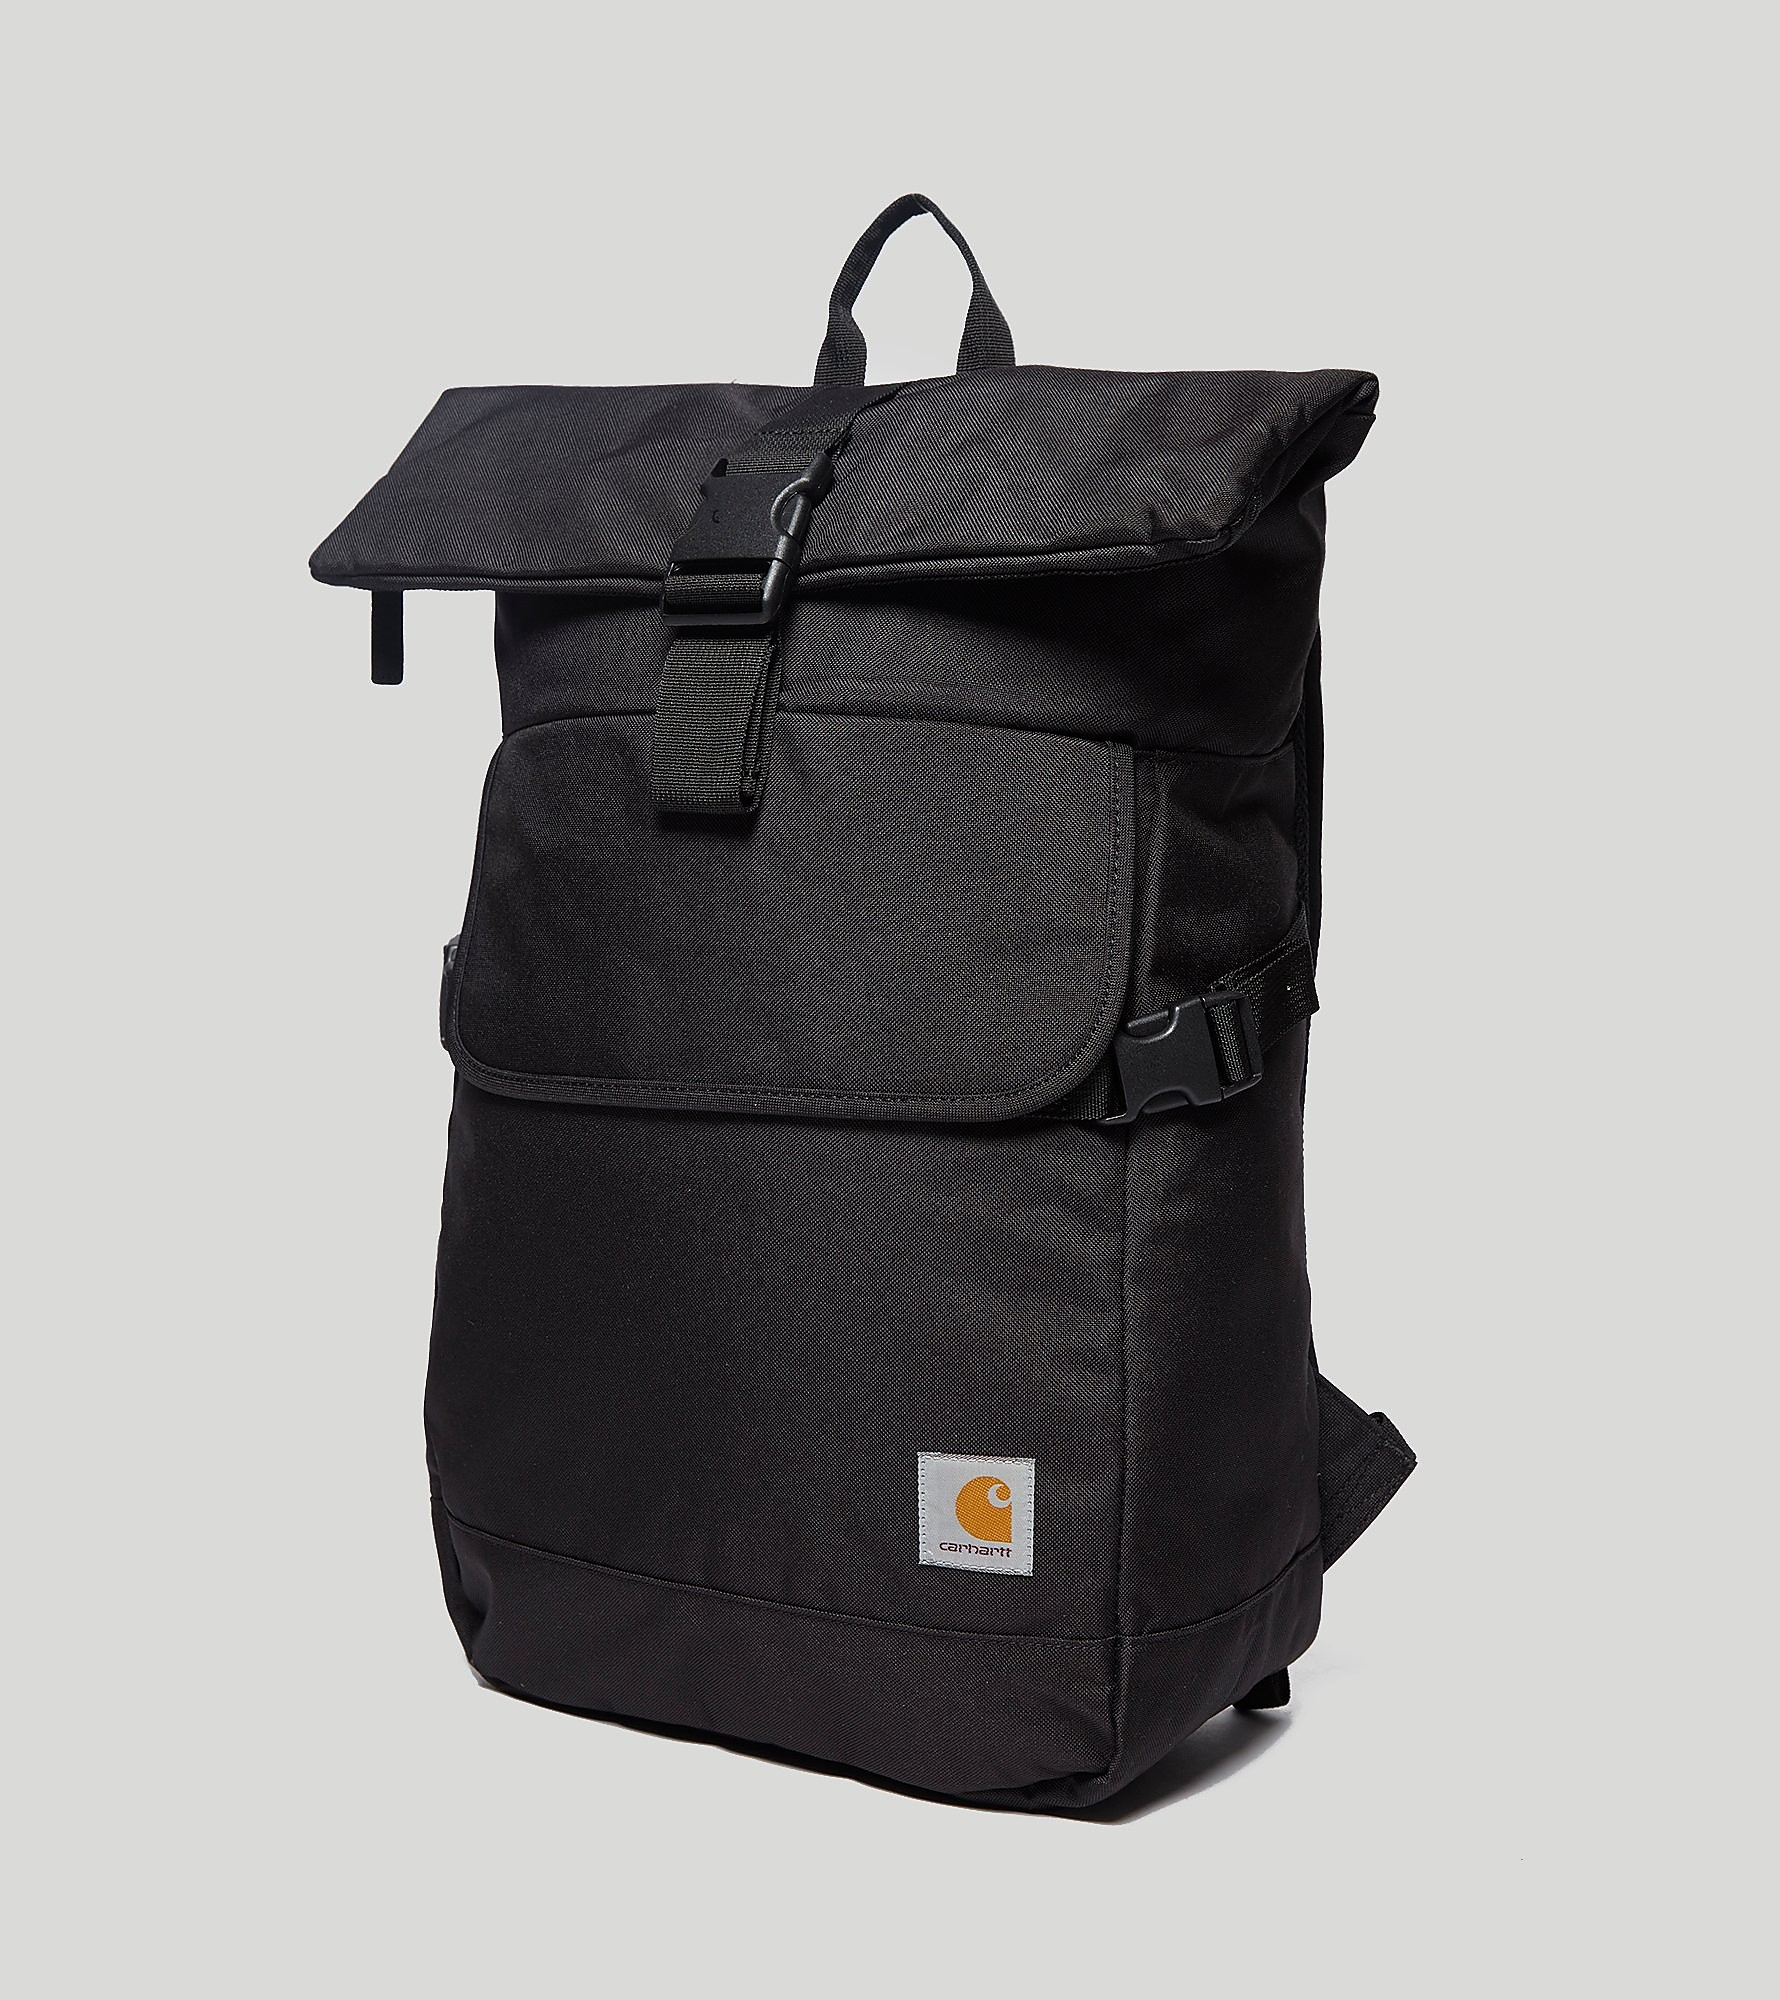 Carhartt WIP Philips Backpack